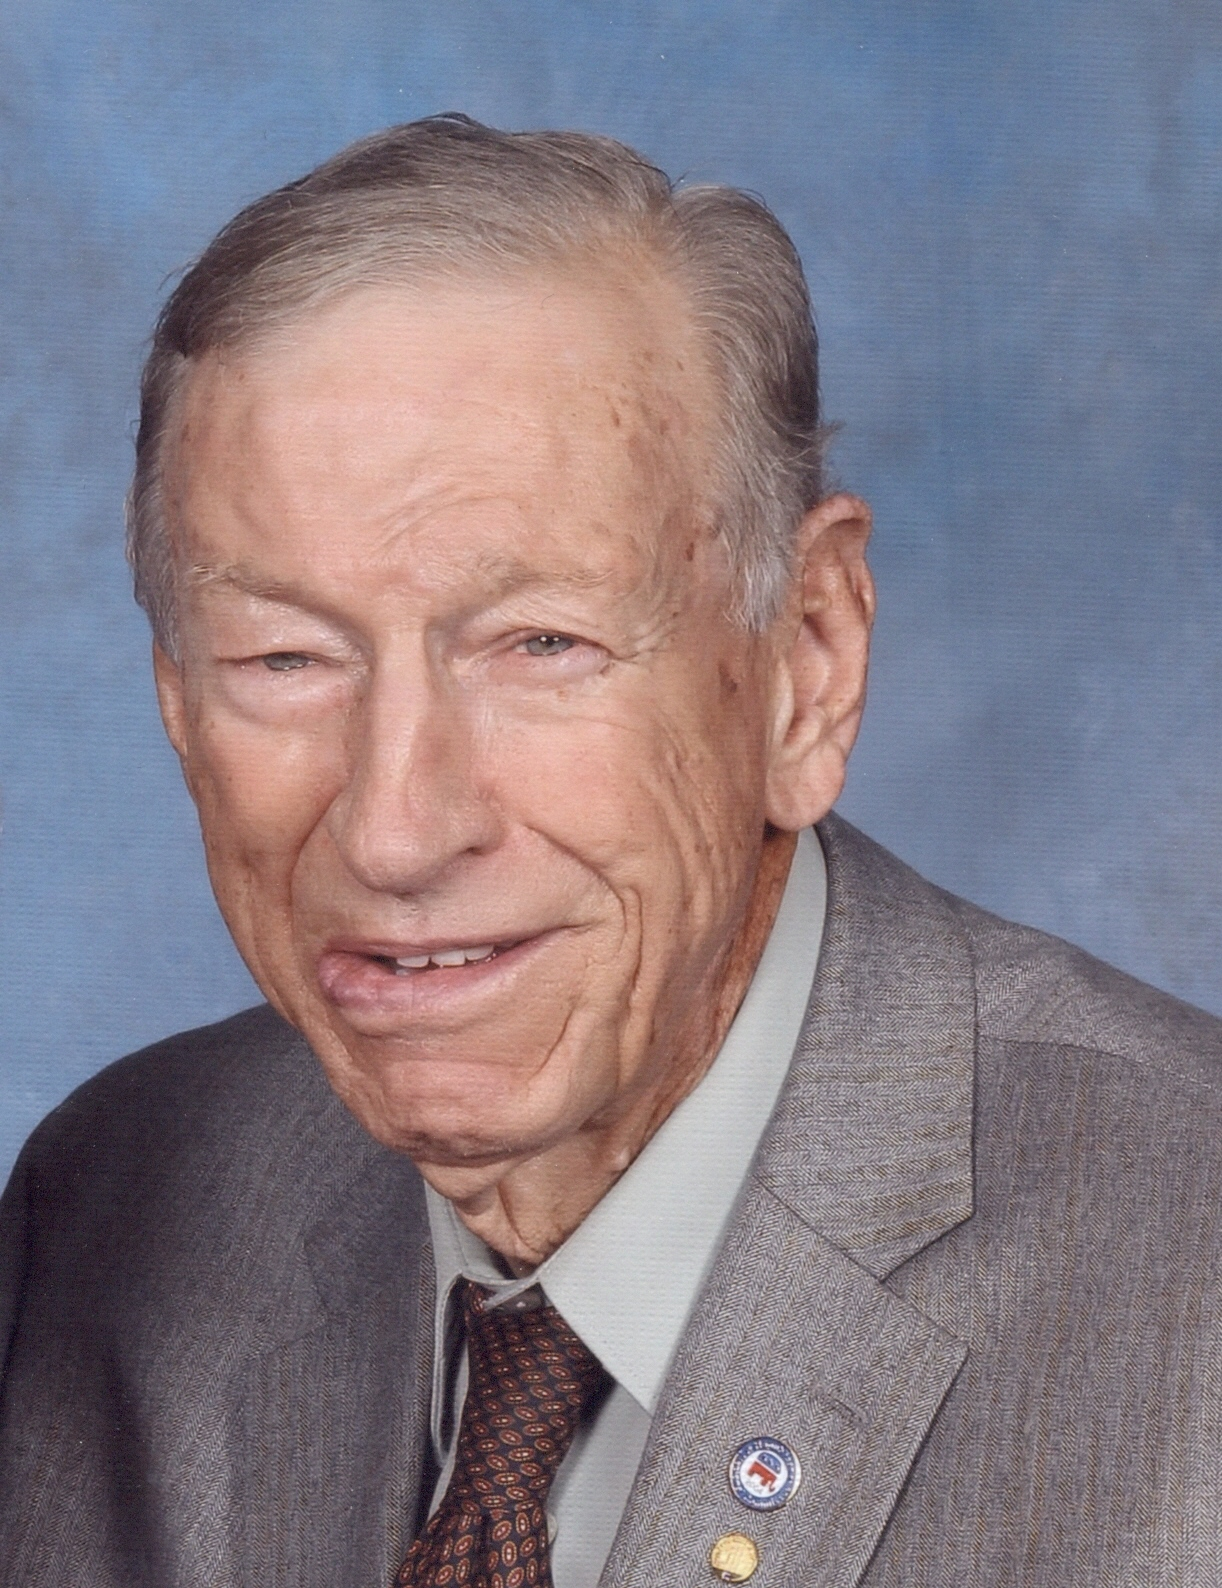 Jack D  Flanary Obituary - Visitation & Funeral Information